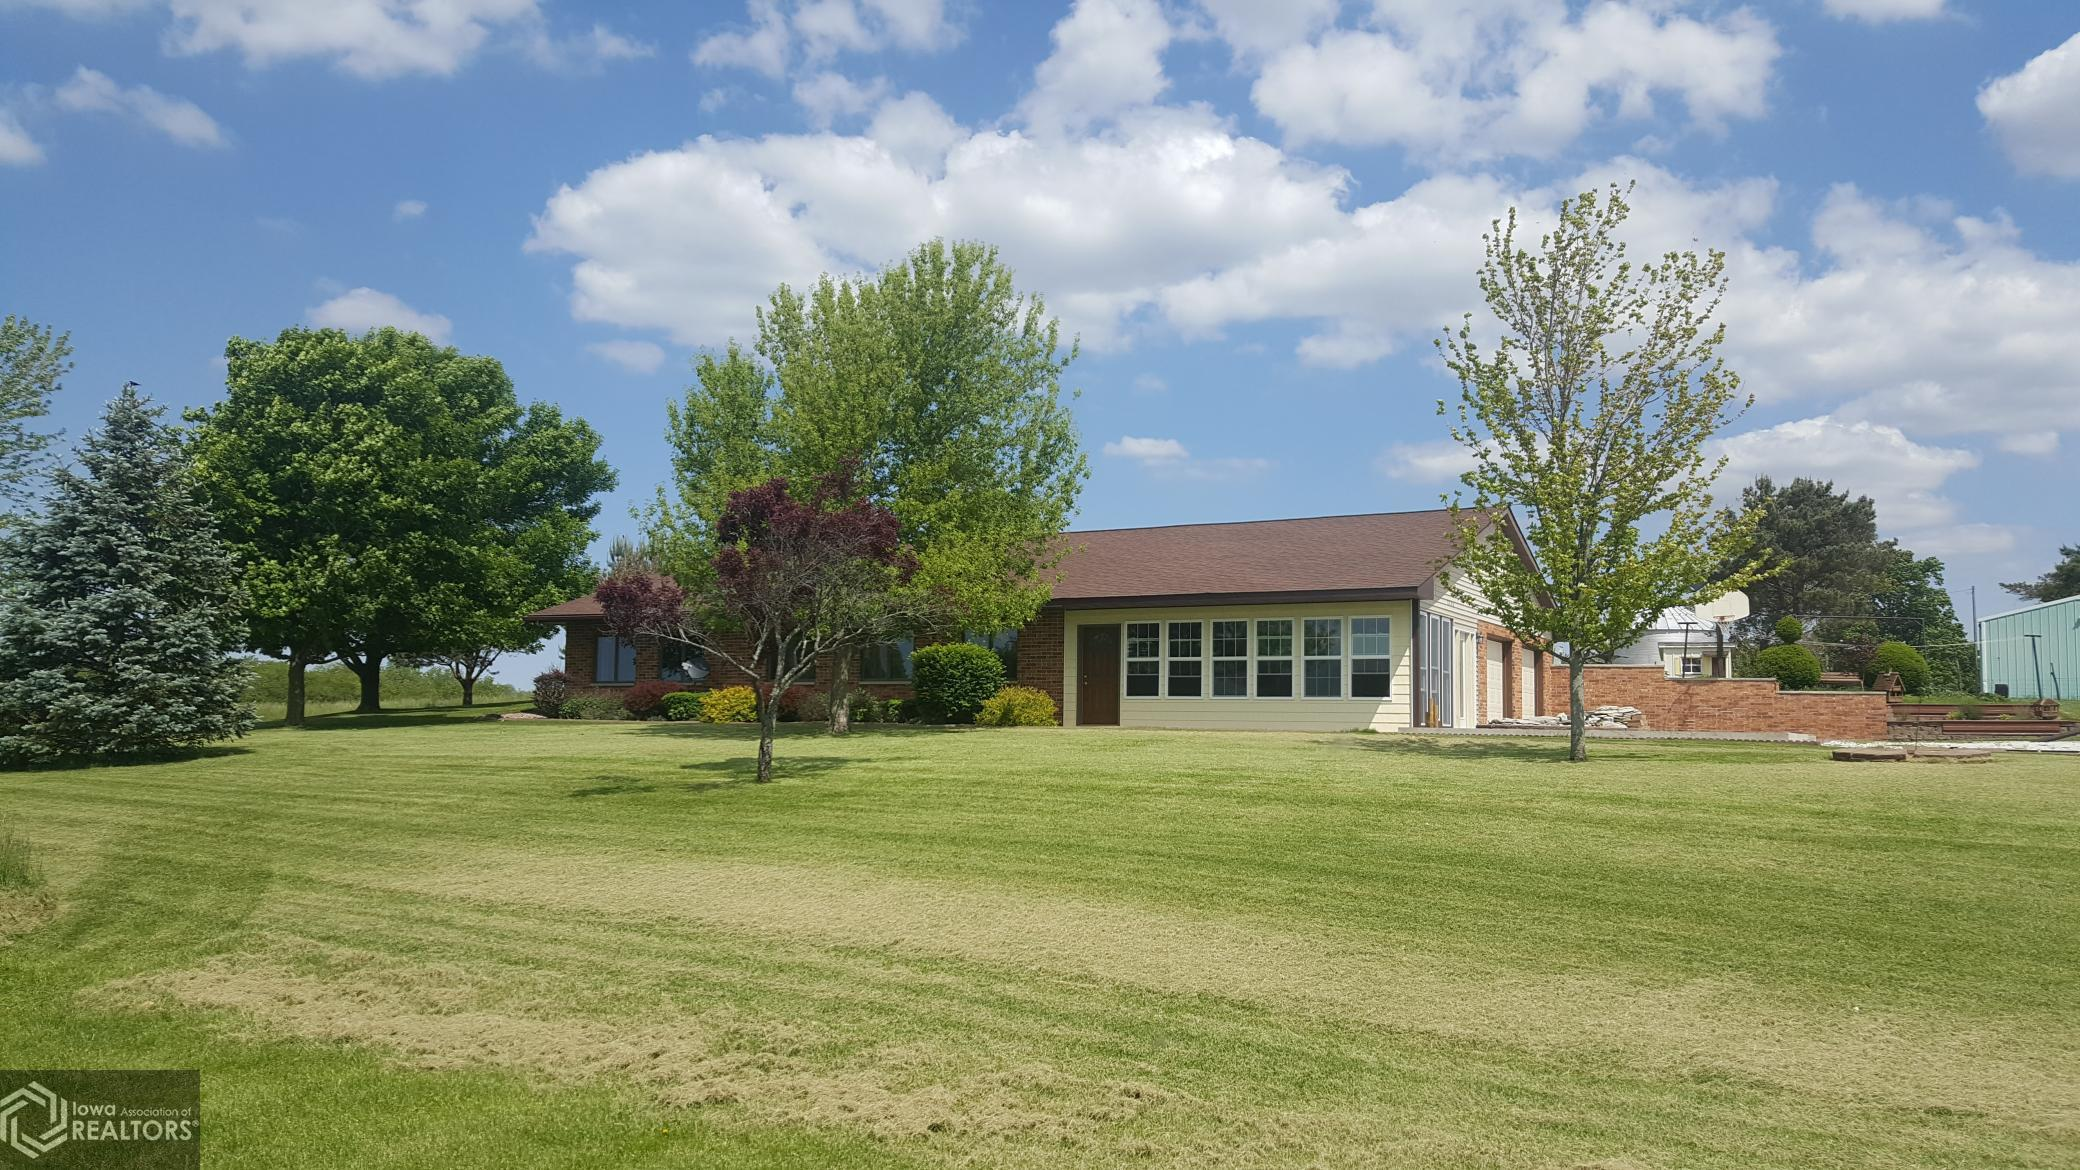 2226 County Road 1050, Nauvoo, Illinois 62354, 3 Bedrooms Bedrooms, ,2 BathroomsBathrooms,Single Family,For Sale,County Road 1050,6071563